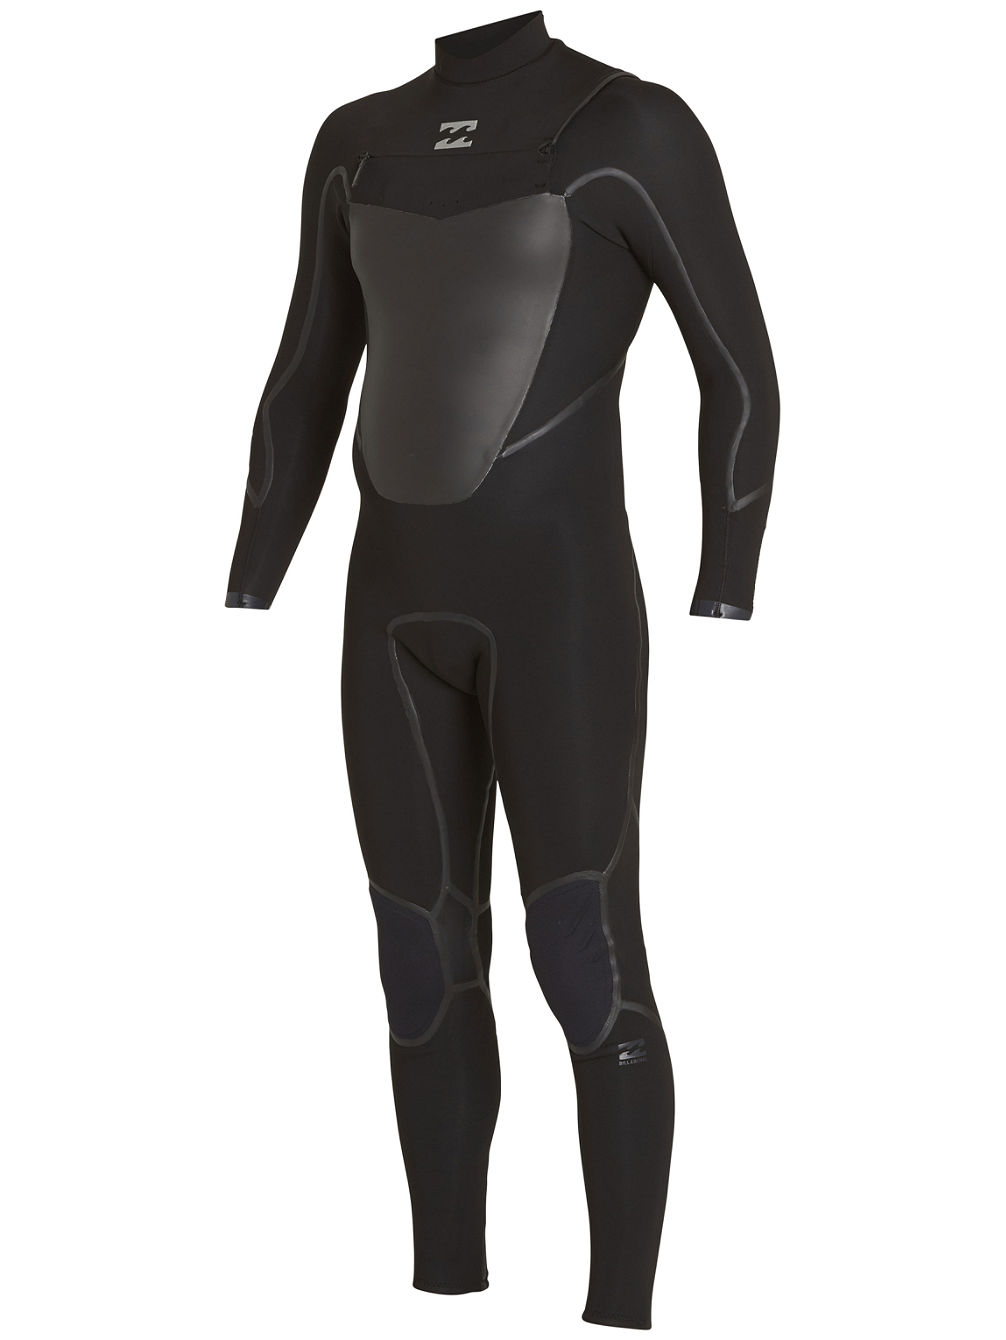 4/3 Absolute X Chest Zip Wetsuit